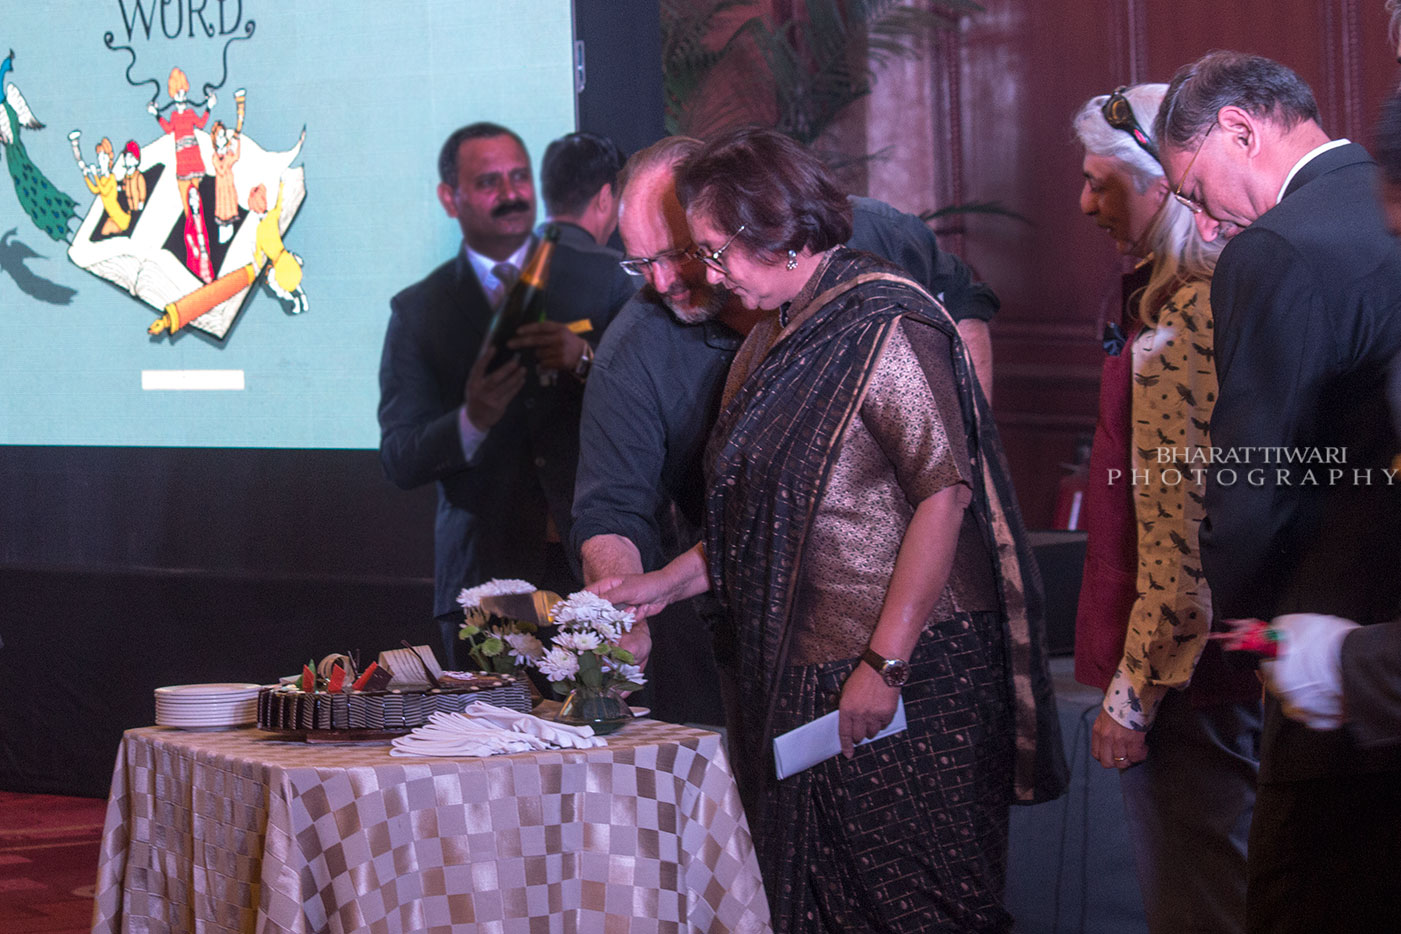 Writers and Festival Directors Namita Gokhale and William Dalrymple invite authors from across the globe to take part in the five-day programme set against the backdrop of Rajasthan's stunning cultural heritage and the Diggi Palace in the state capital Jaipur